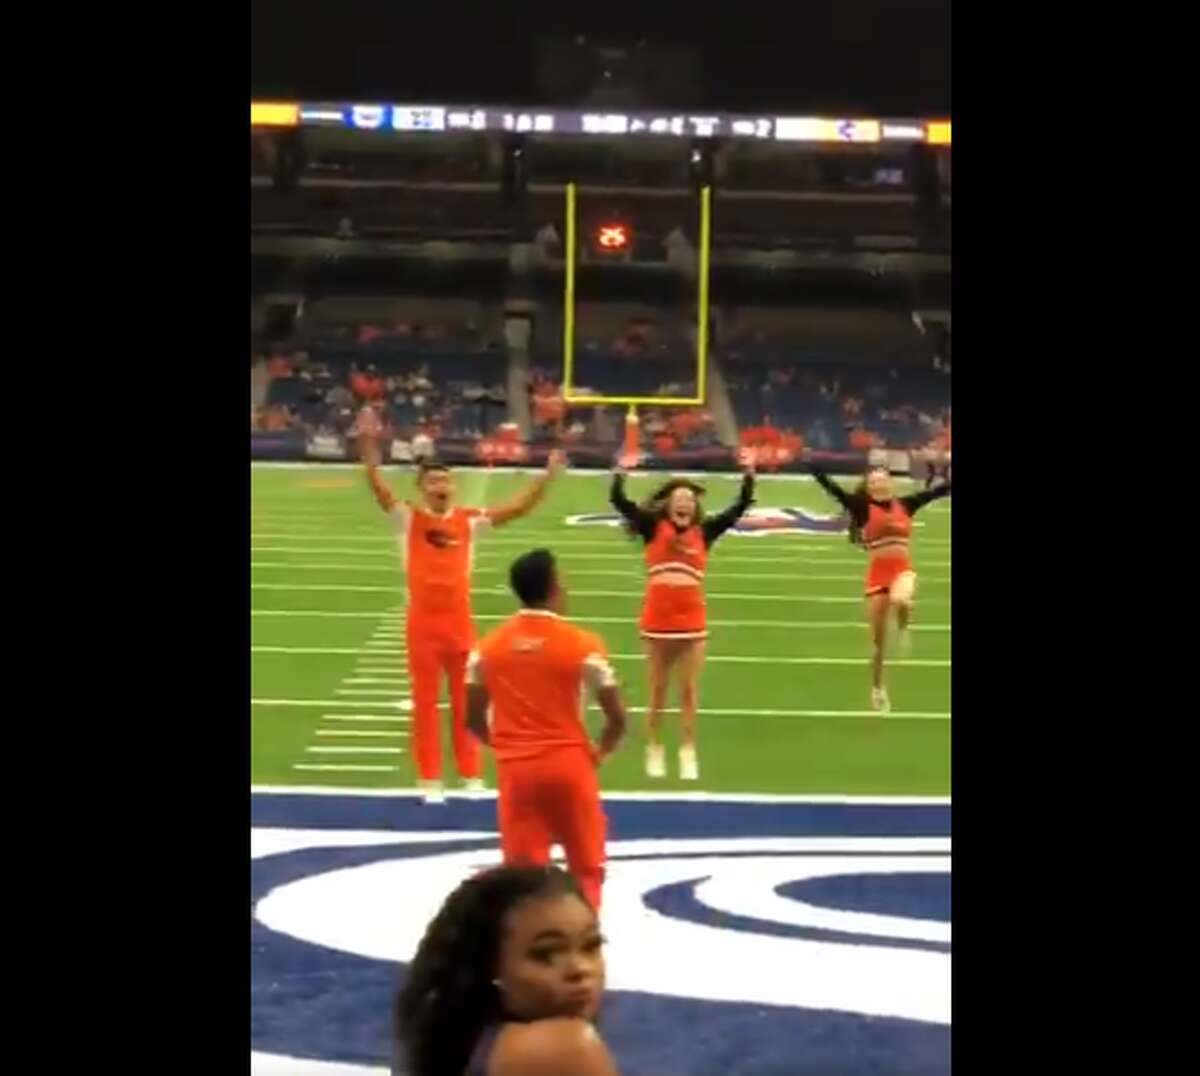 Tyriq Kuykendallcompleted a 100-yard pass on the Alamodome field. The video has the internet wondering how he could manage something so